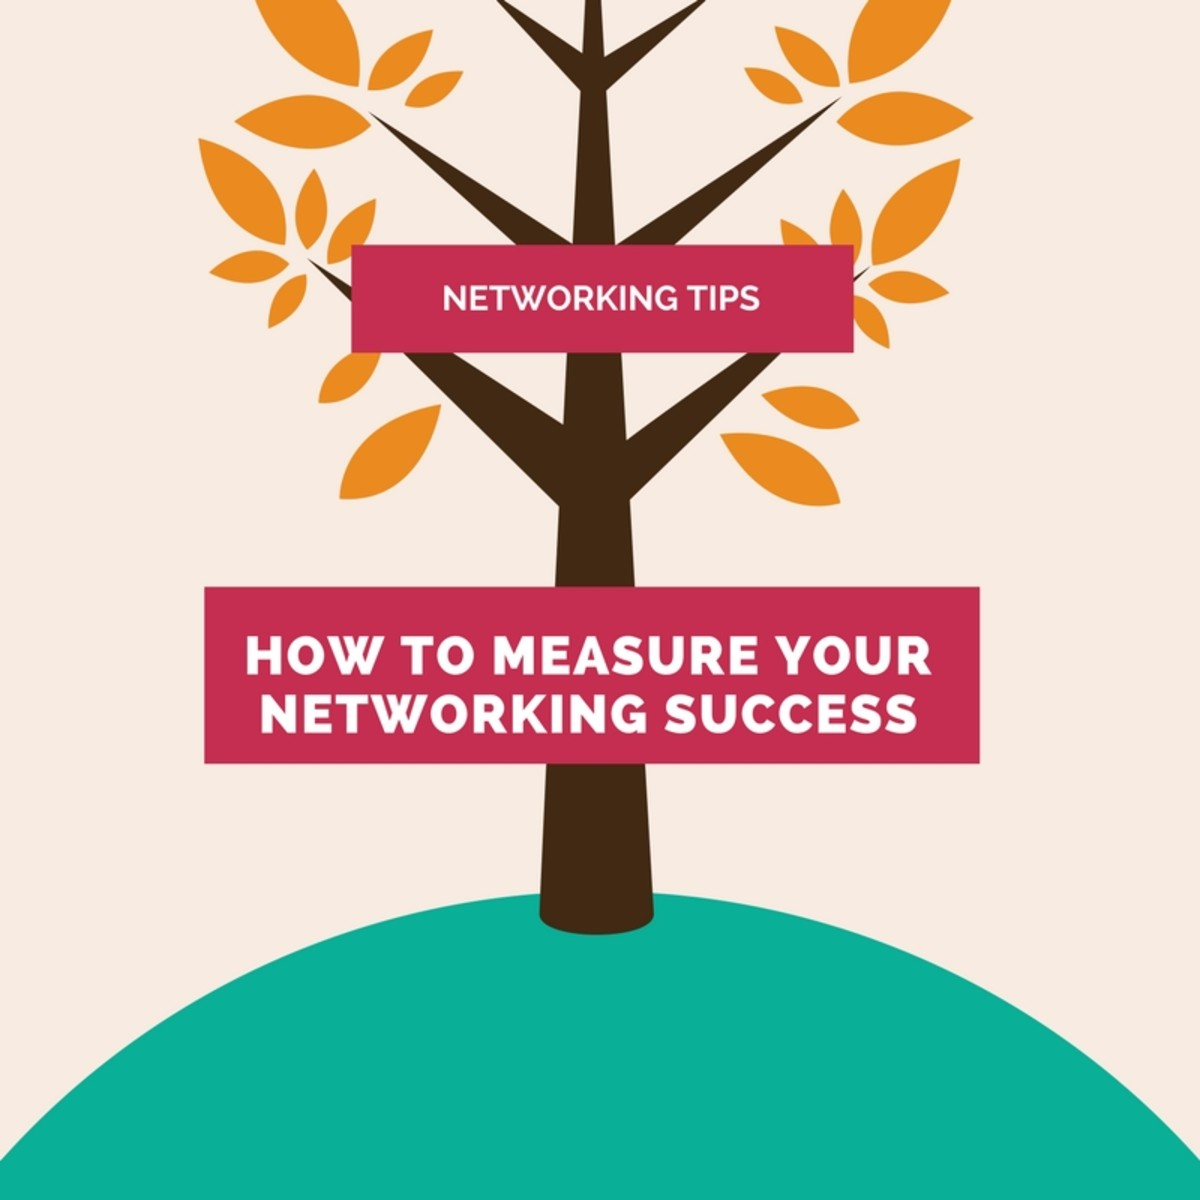 Networking Tips: How to Measure Your Networking Success